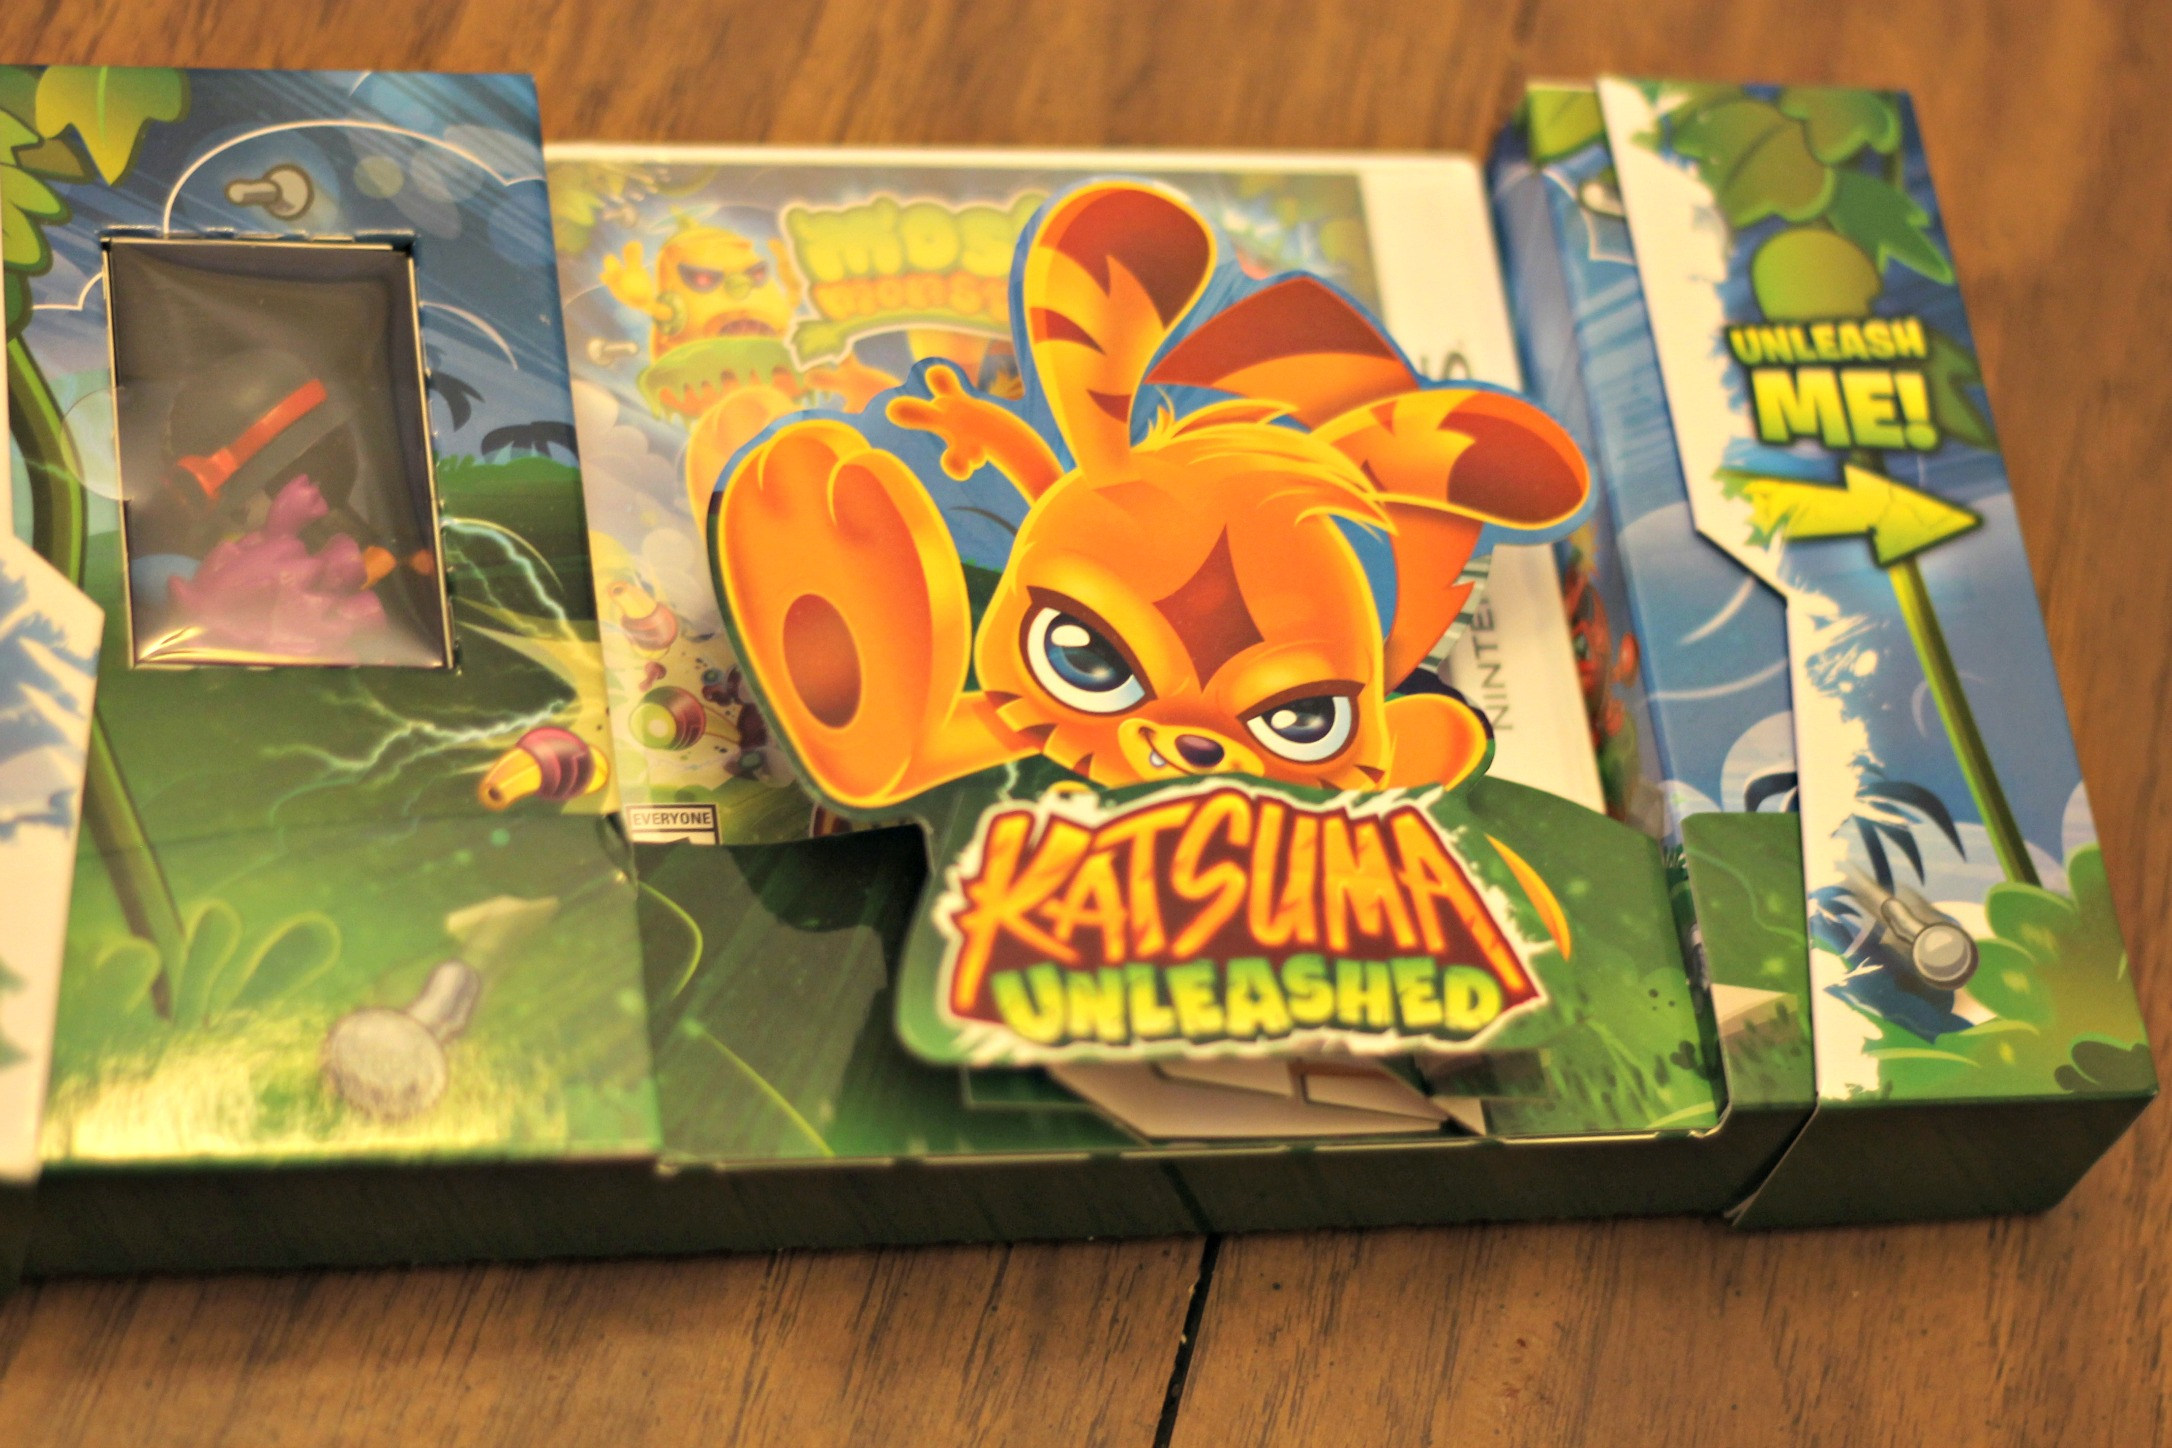 moshi monsters katsuma unleashed review